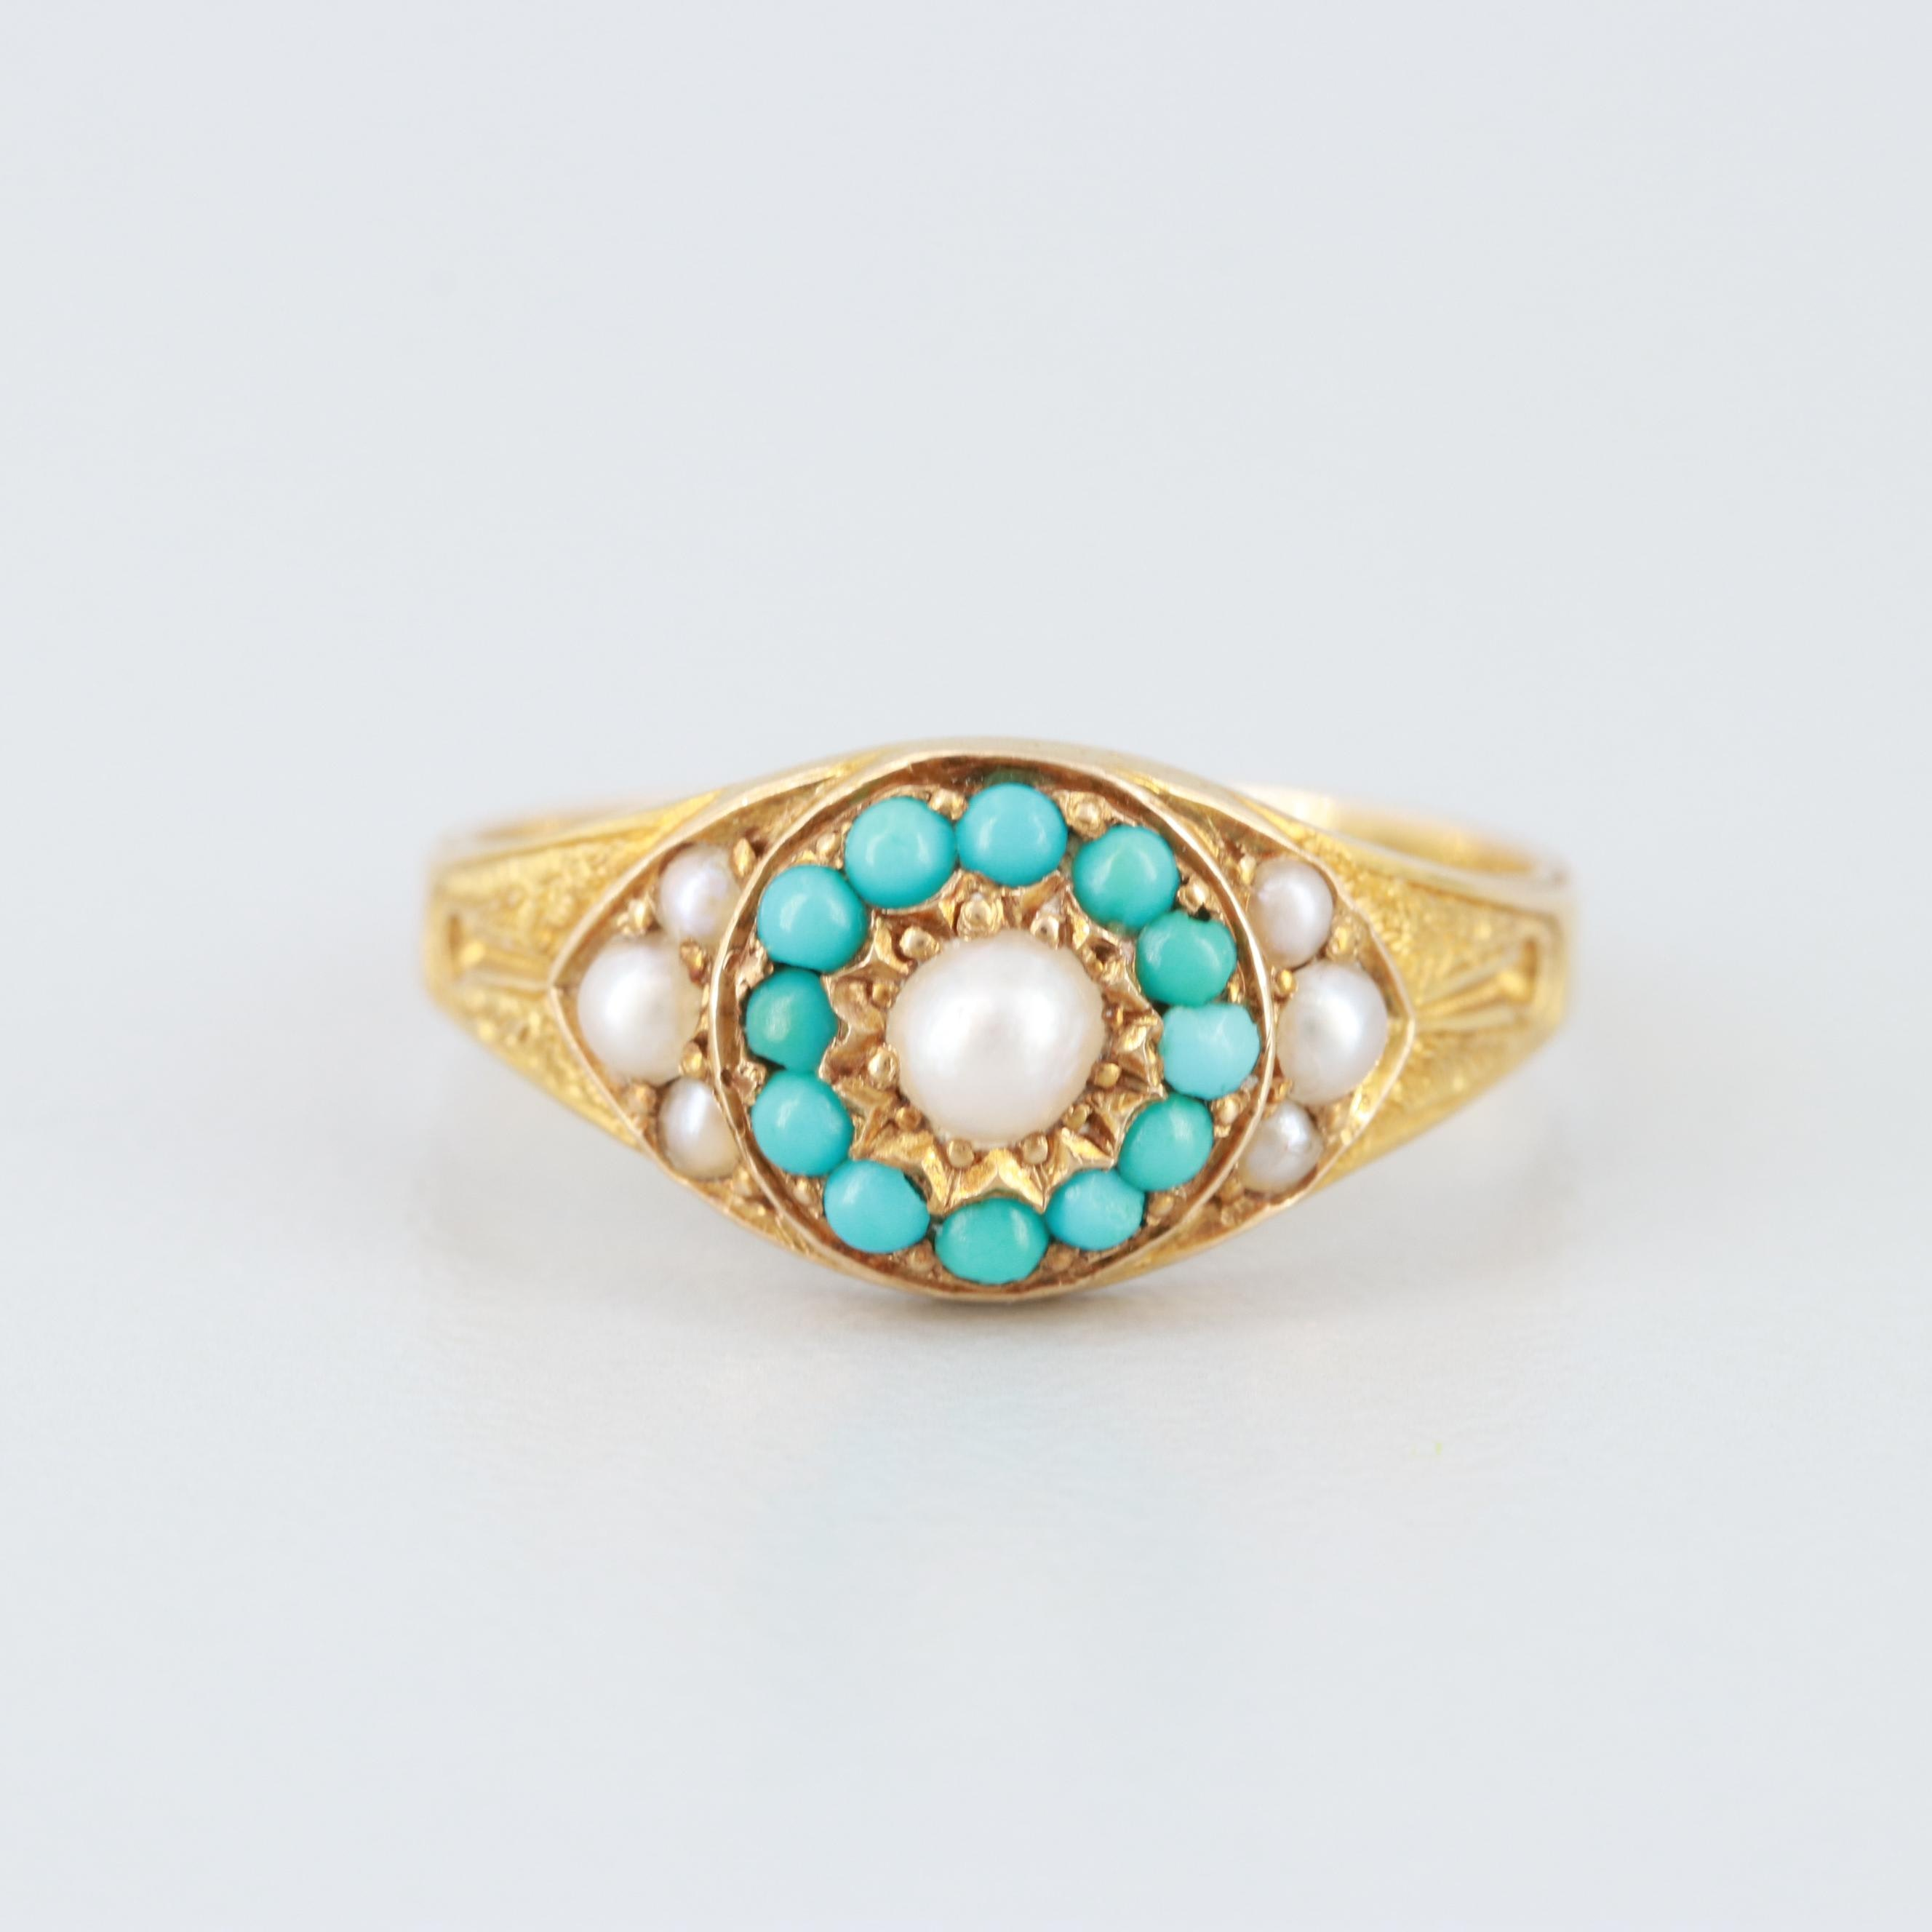 Victorian 15K Yellow Gold Cultured Pearl and Turquoise Ring